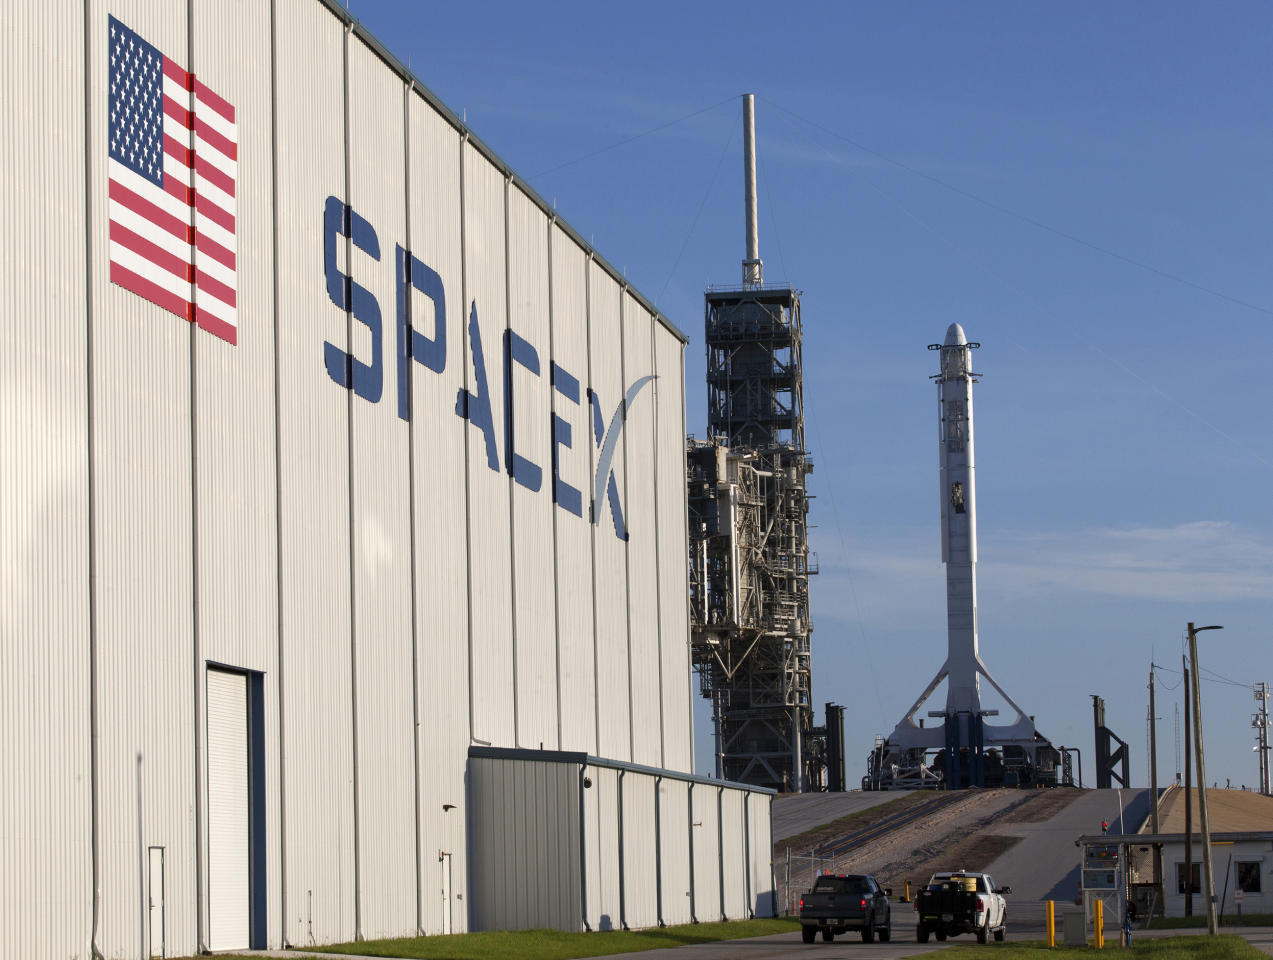 In this photo provided by NASA, a SpaceX Falcon 9 rocket and Dragon spacecraft await liftoff from NASA Kennedy Space Center's Launch Complex 39A in Cape Canaveral, Fla., on Monday, Aug. 14, 2017. SpaceX is about to launch a few tons of research to the International Space Station — plus ice cream. (Kim Shiflett/NASA via AP)